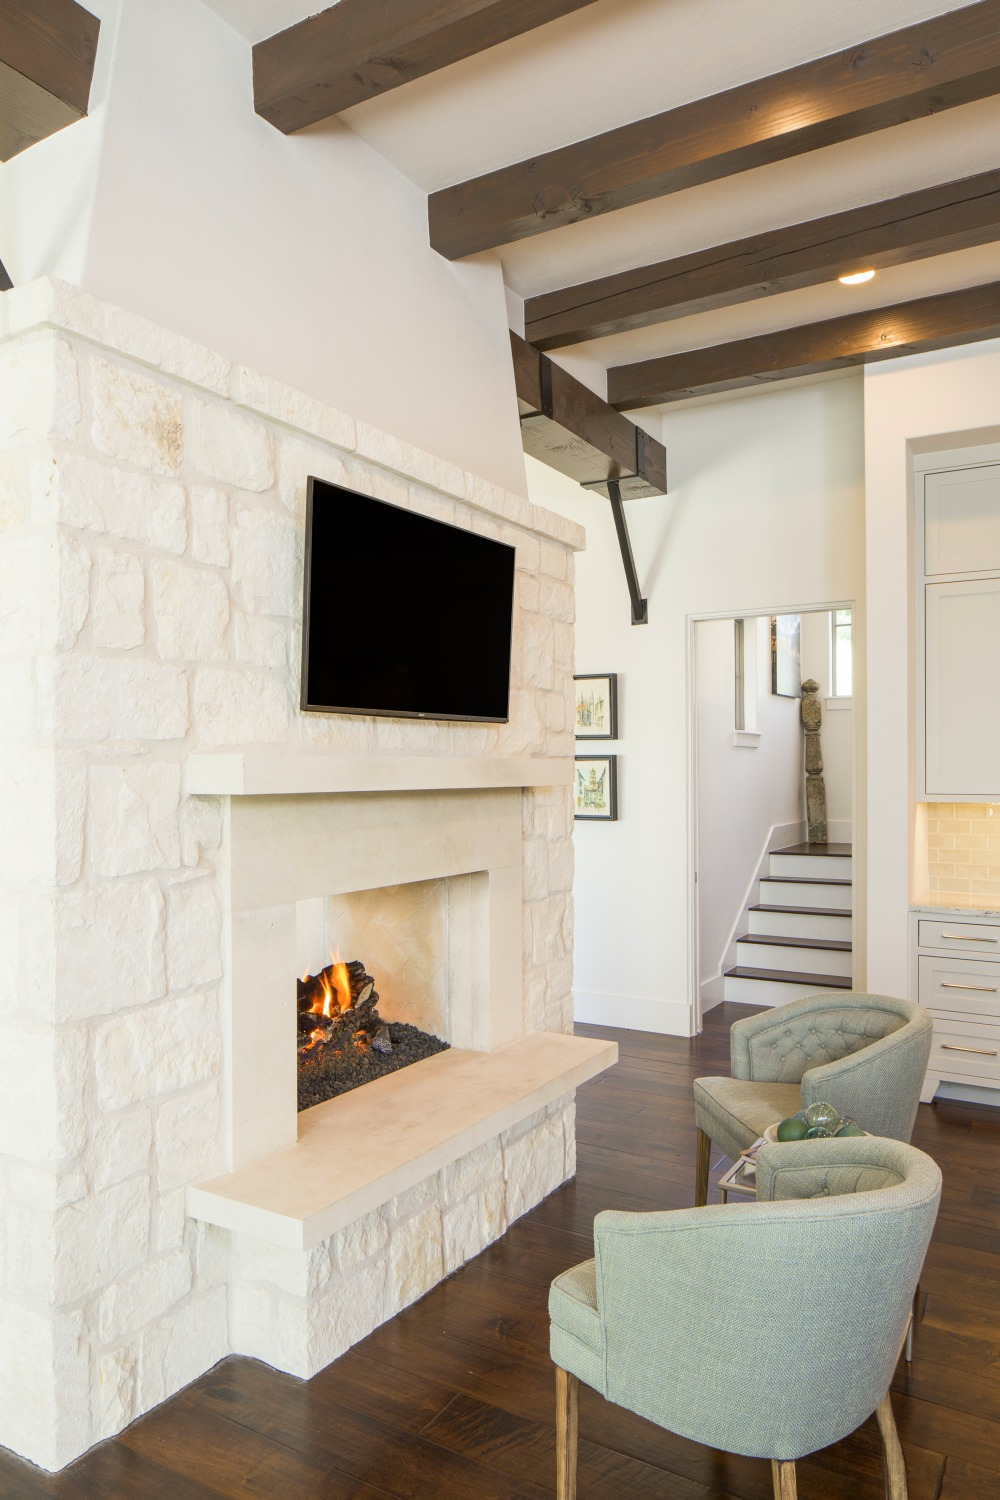 Architecture-Home-Contemporary-European-Farmhouse-03-Fireplace.jpg